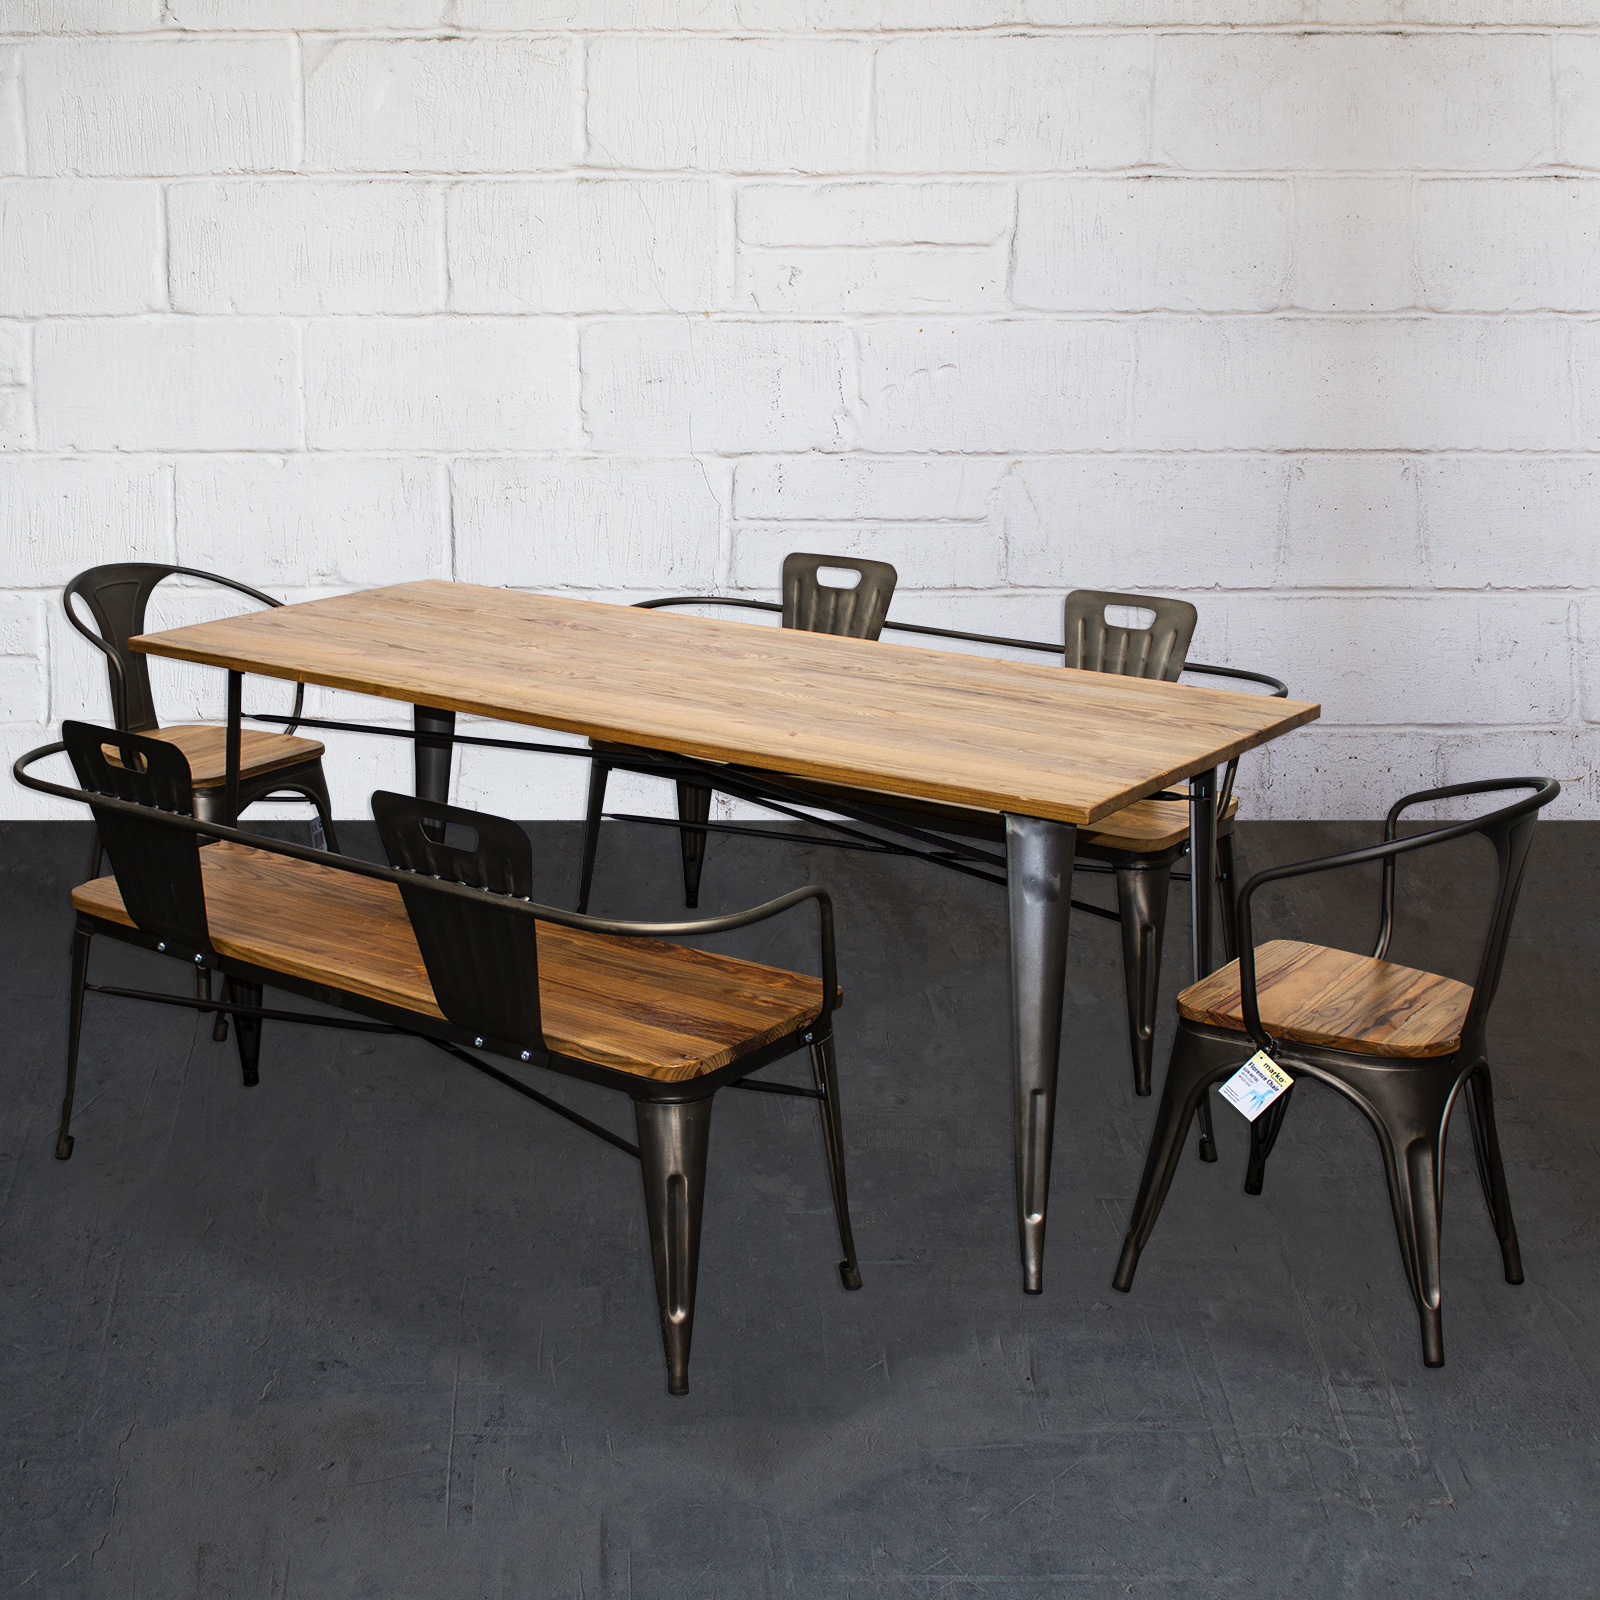 Fine Details About 5Pc Dining Set Table Chair Bench Kitchen Home Restaurant Dine Metal Wood Tolix Alphanode Cool Chair Designs And Ideas Alphanodeonline